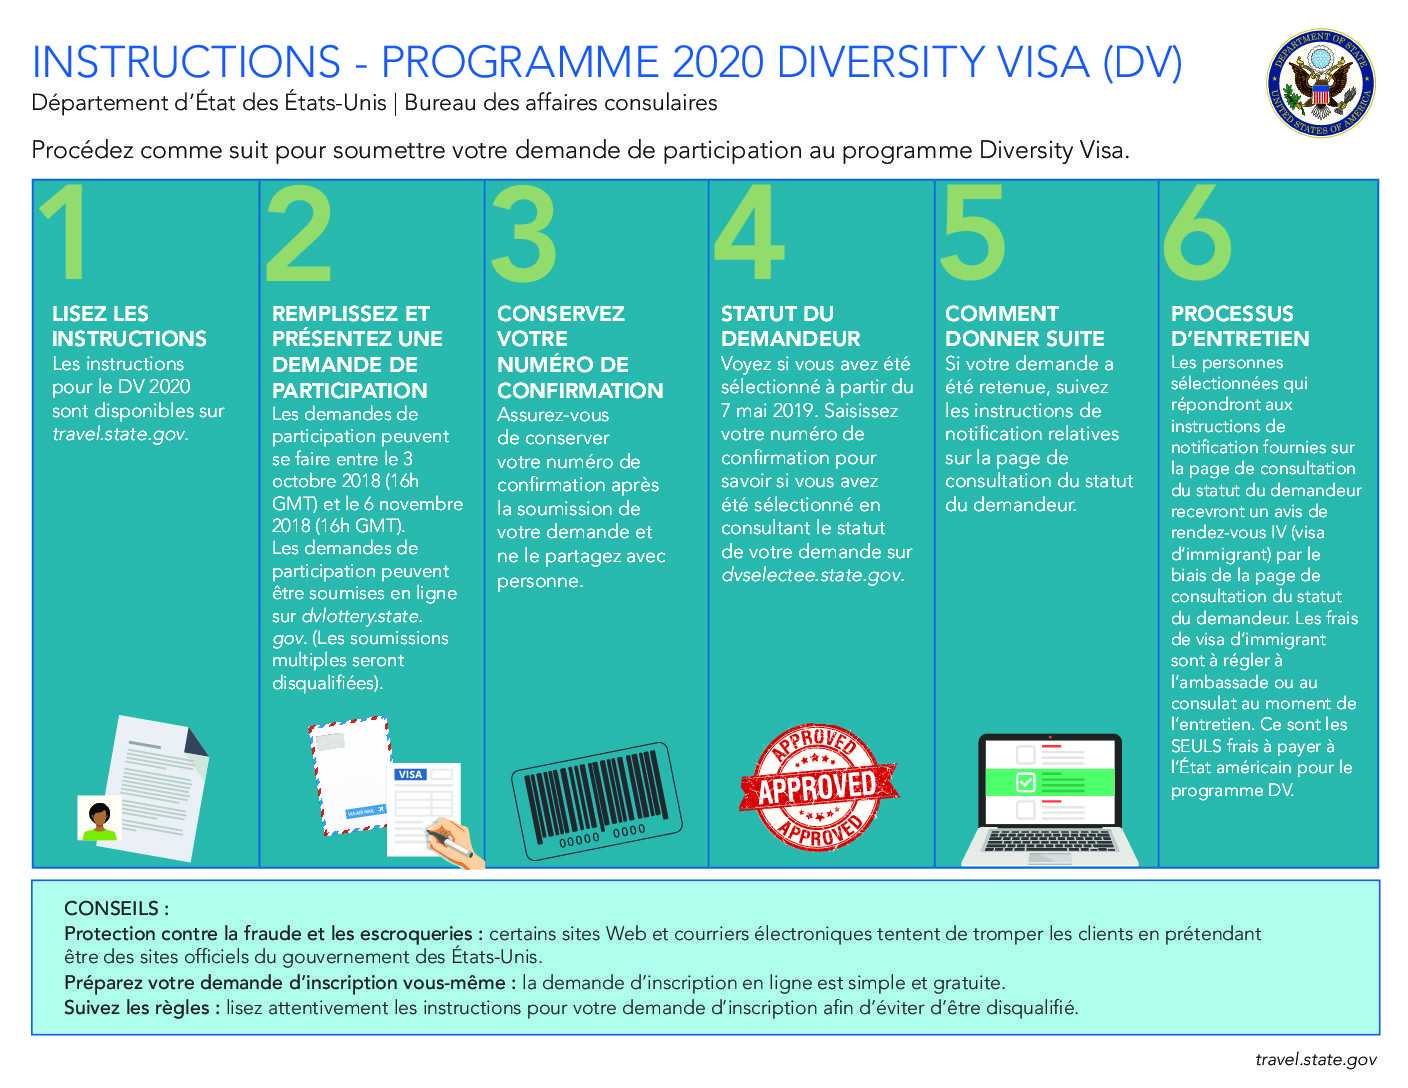 INSTRUCTIONS FOR THE 2020 DIVERSITY IMMIGRANT VISA PROGRAM